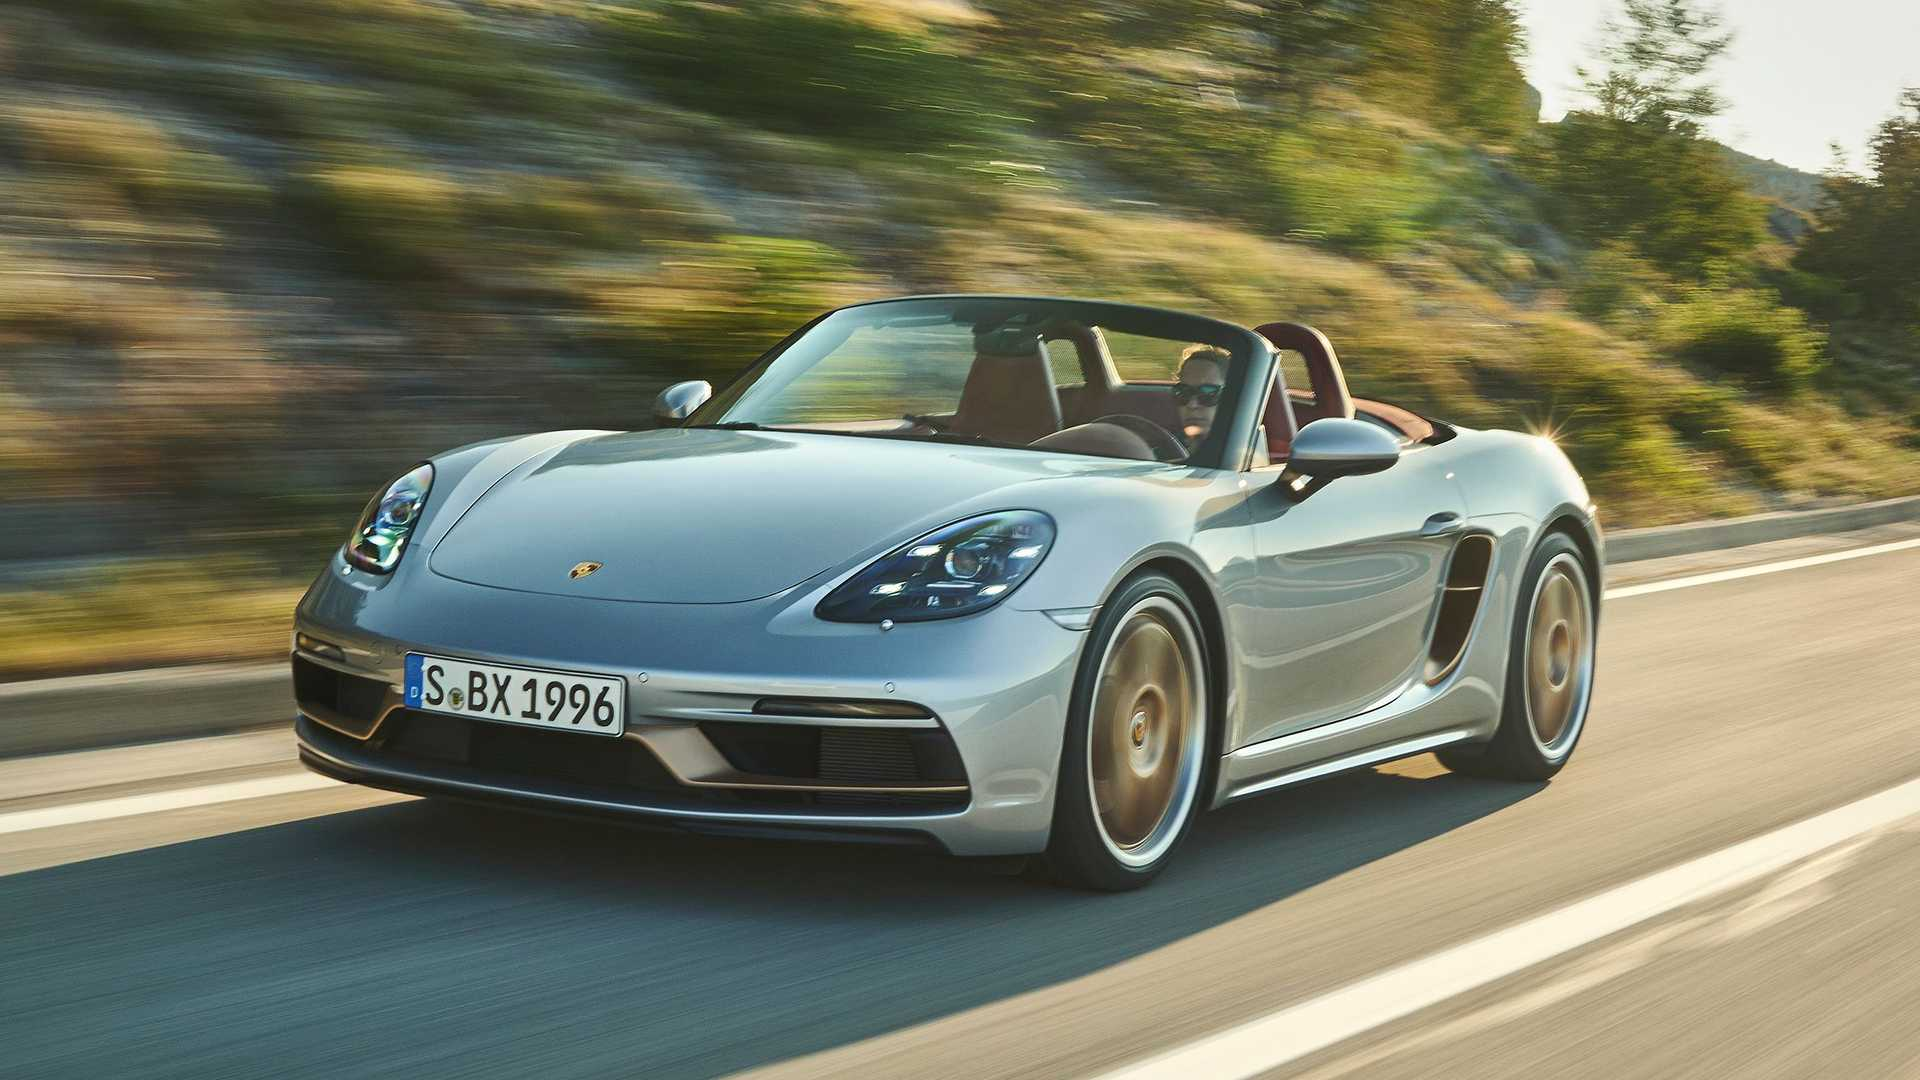 photo of 2021 Porsche Boxster 25 Pays Homage To Original 1996 Roadster image